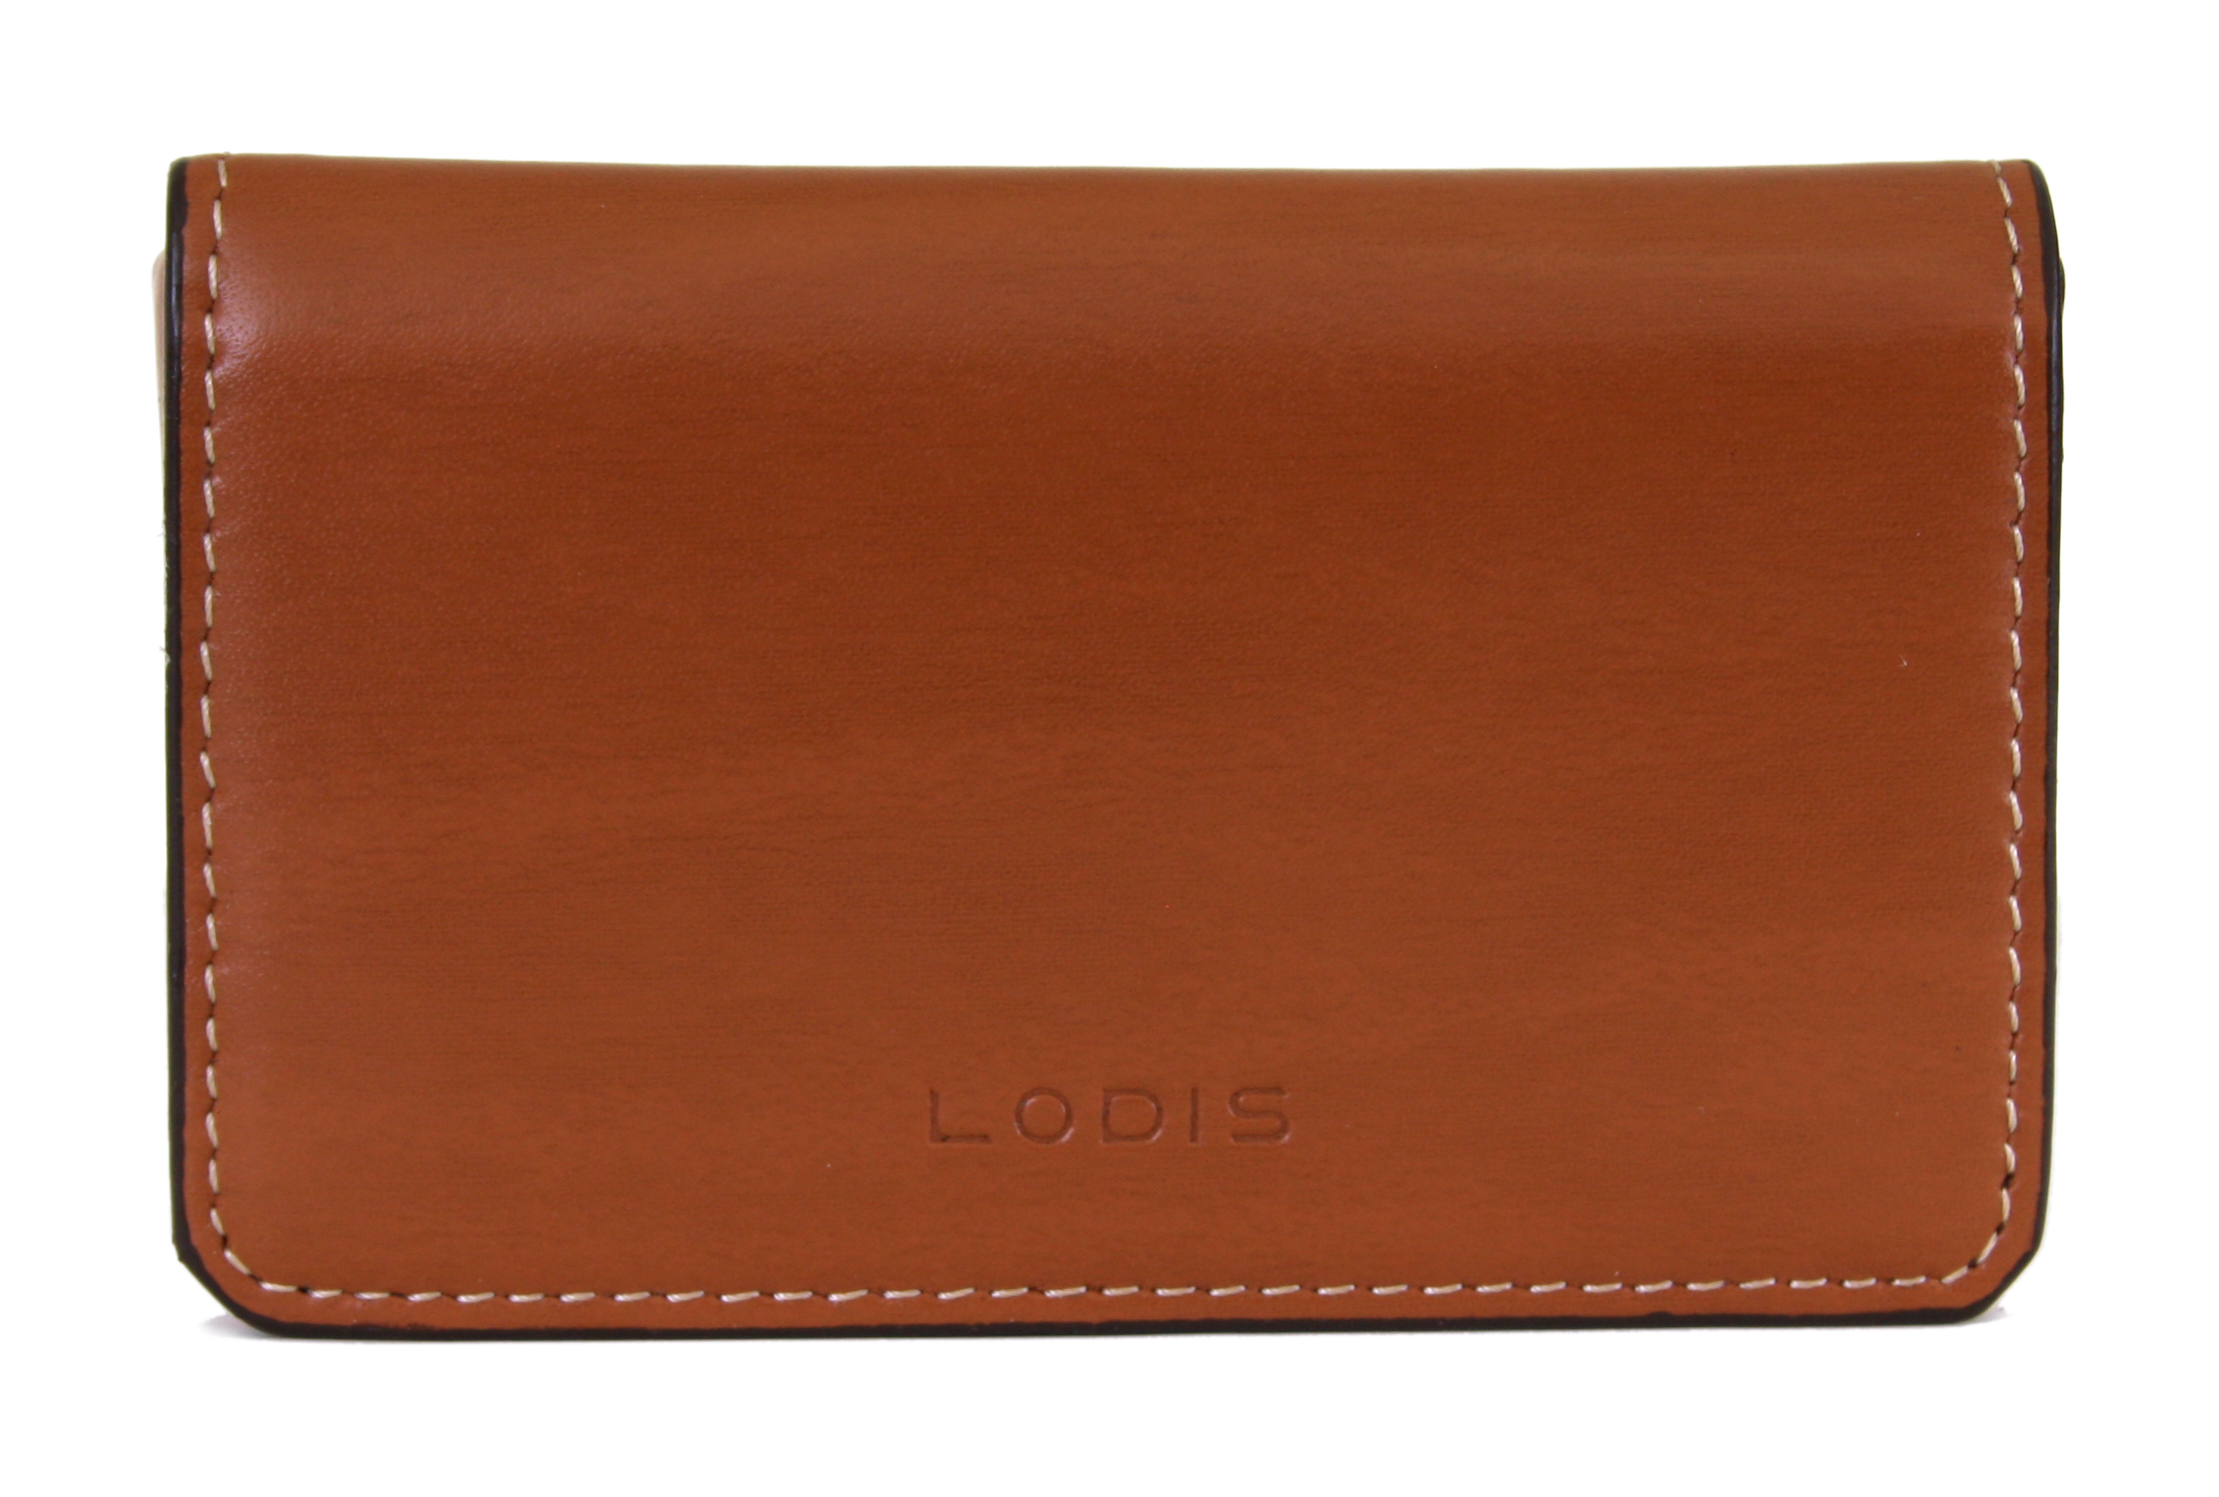 Lodis AUDREY MINI CARD CASE Toffee